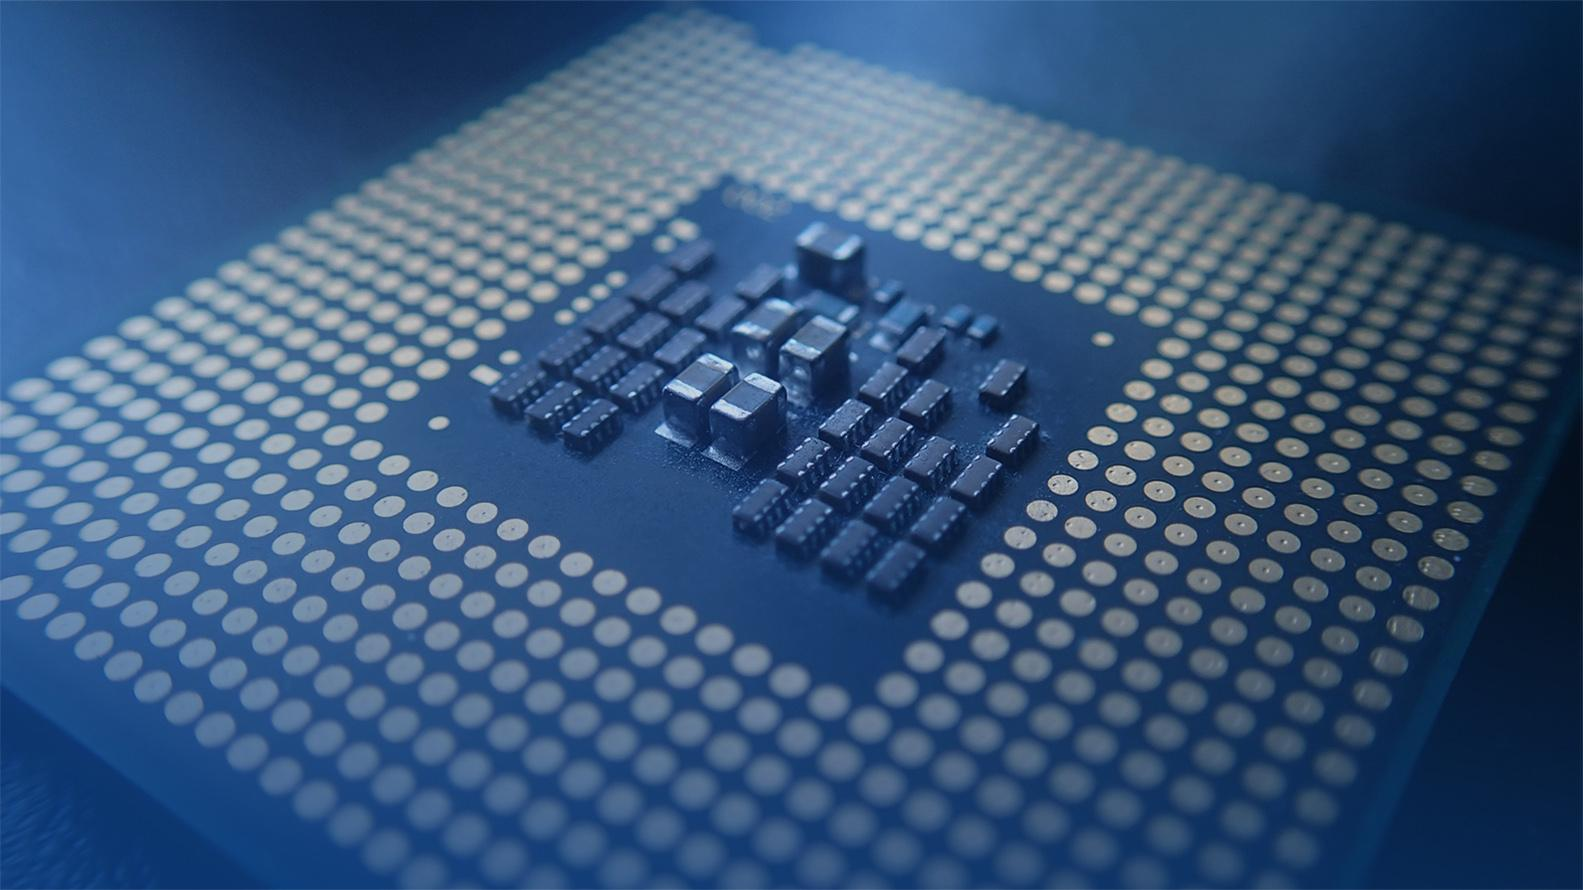 background image with microchip